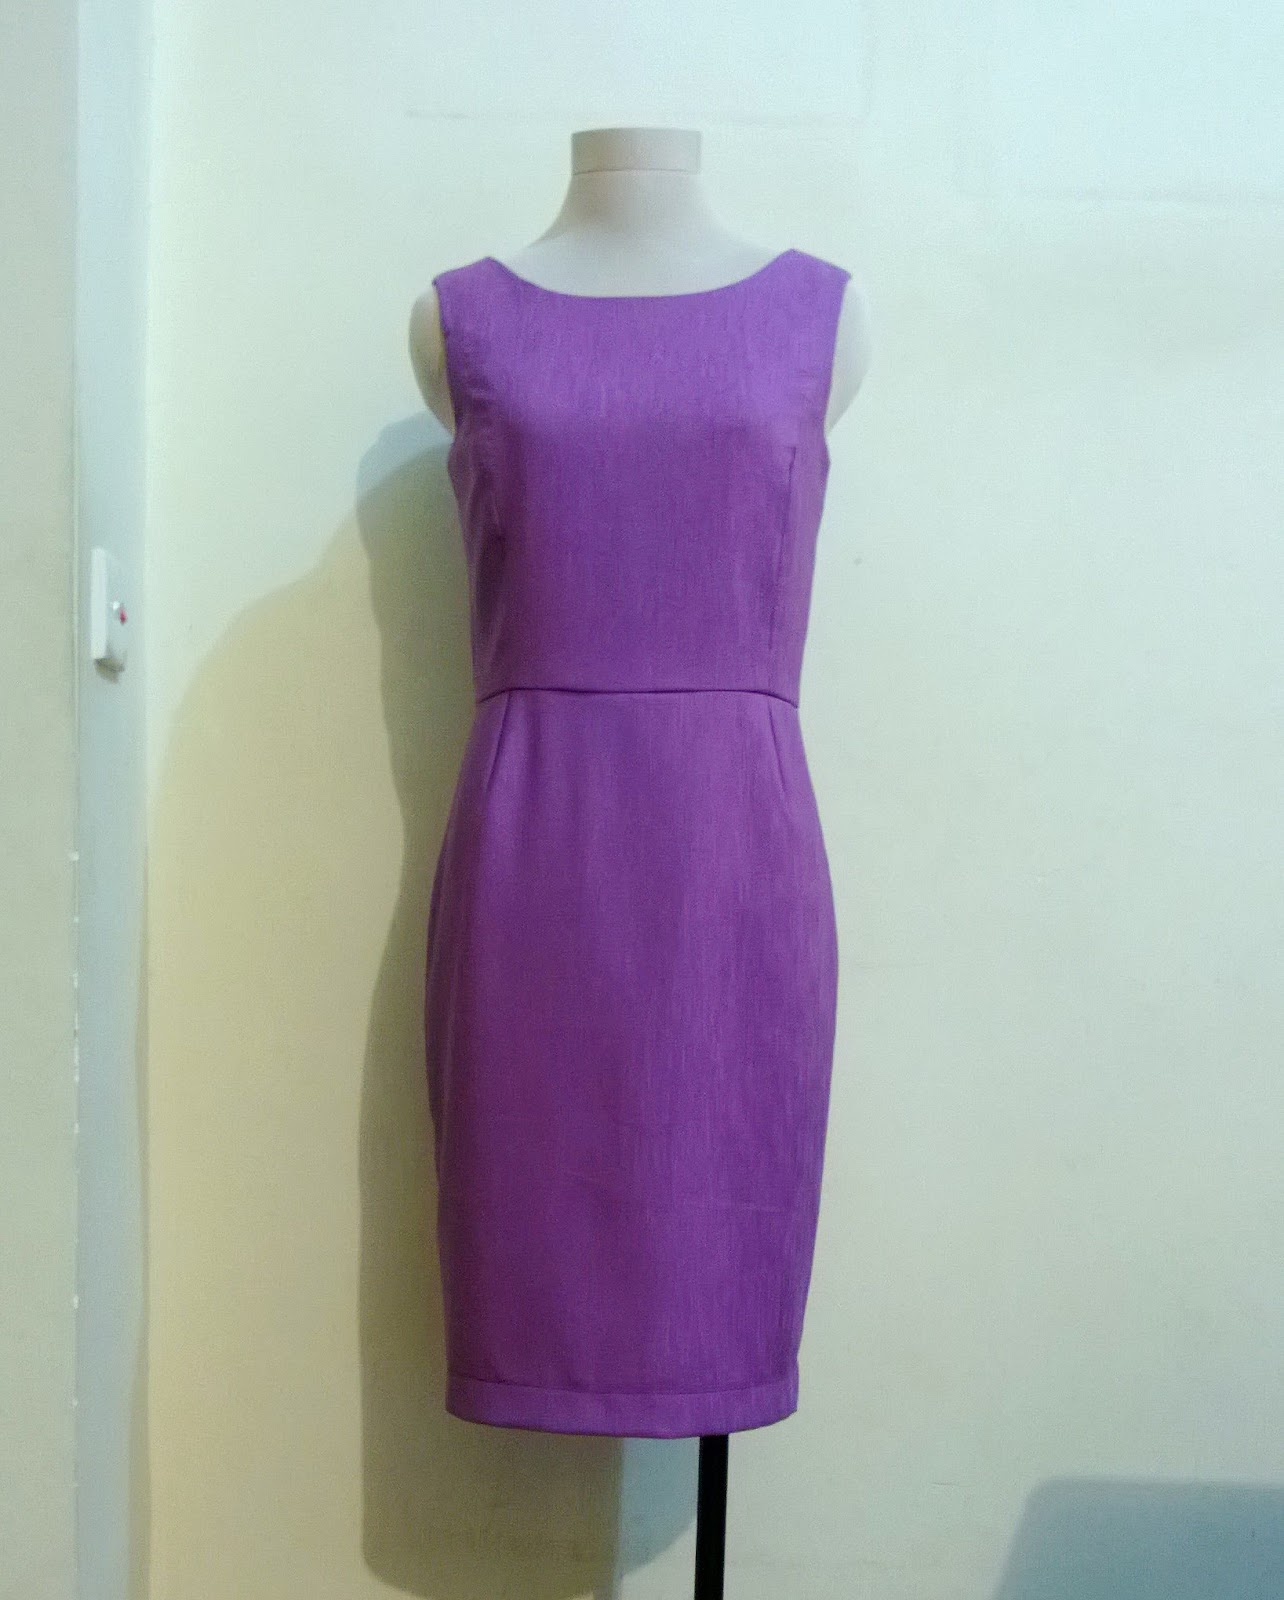 http://velvetribbonsew.blogspot.com/2013/04/sheath-dress_9.html